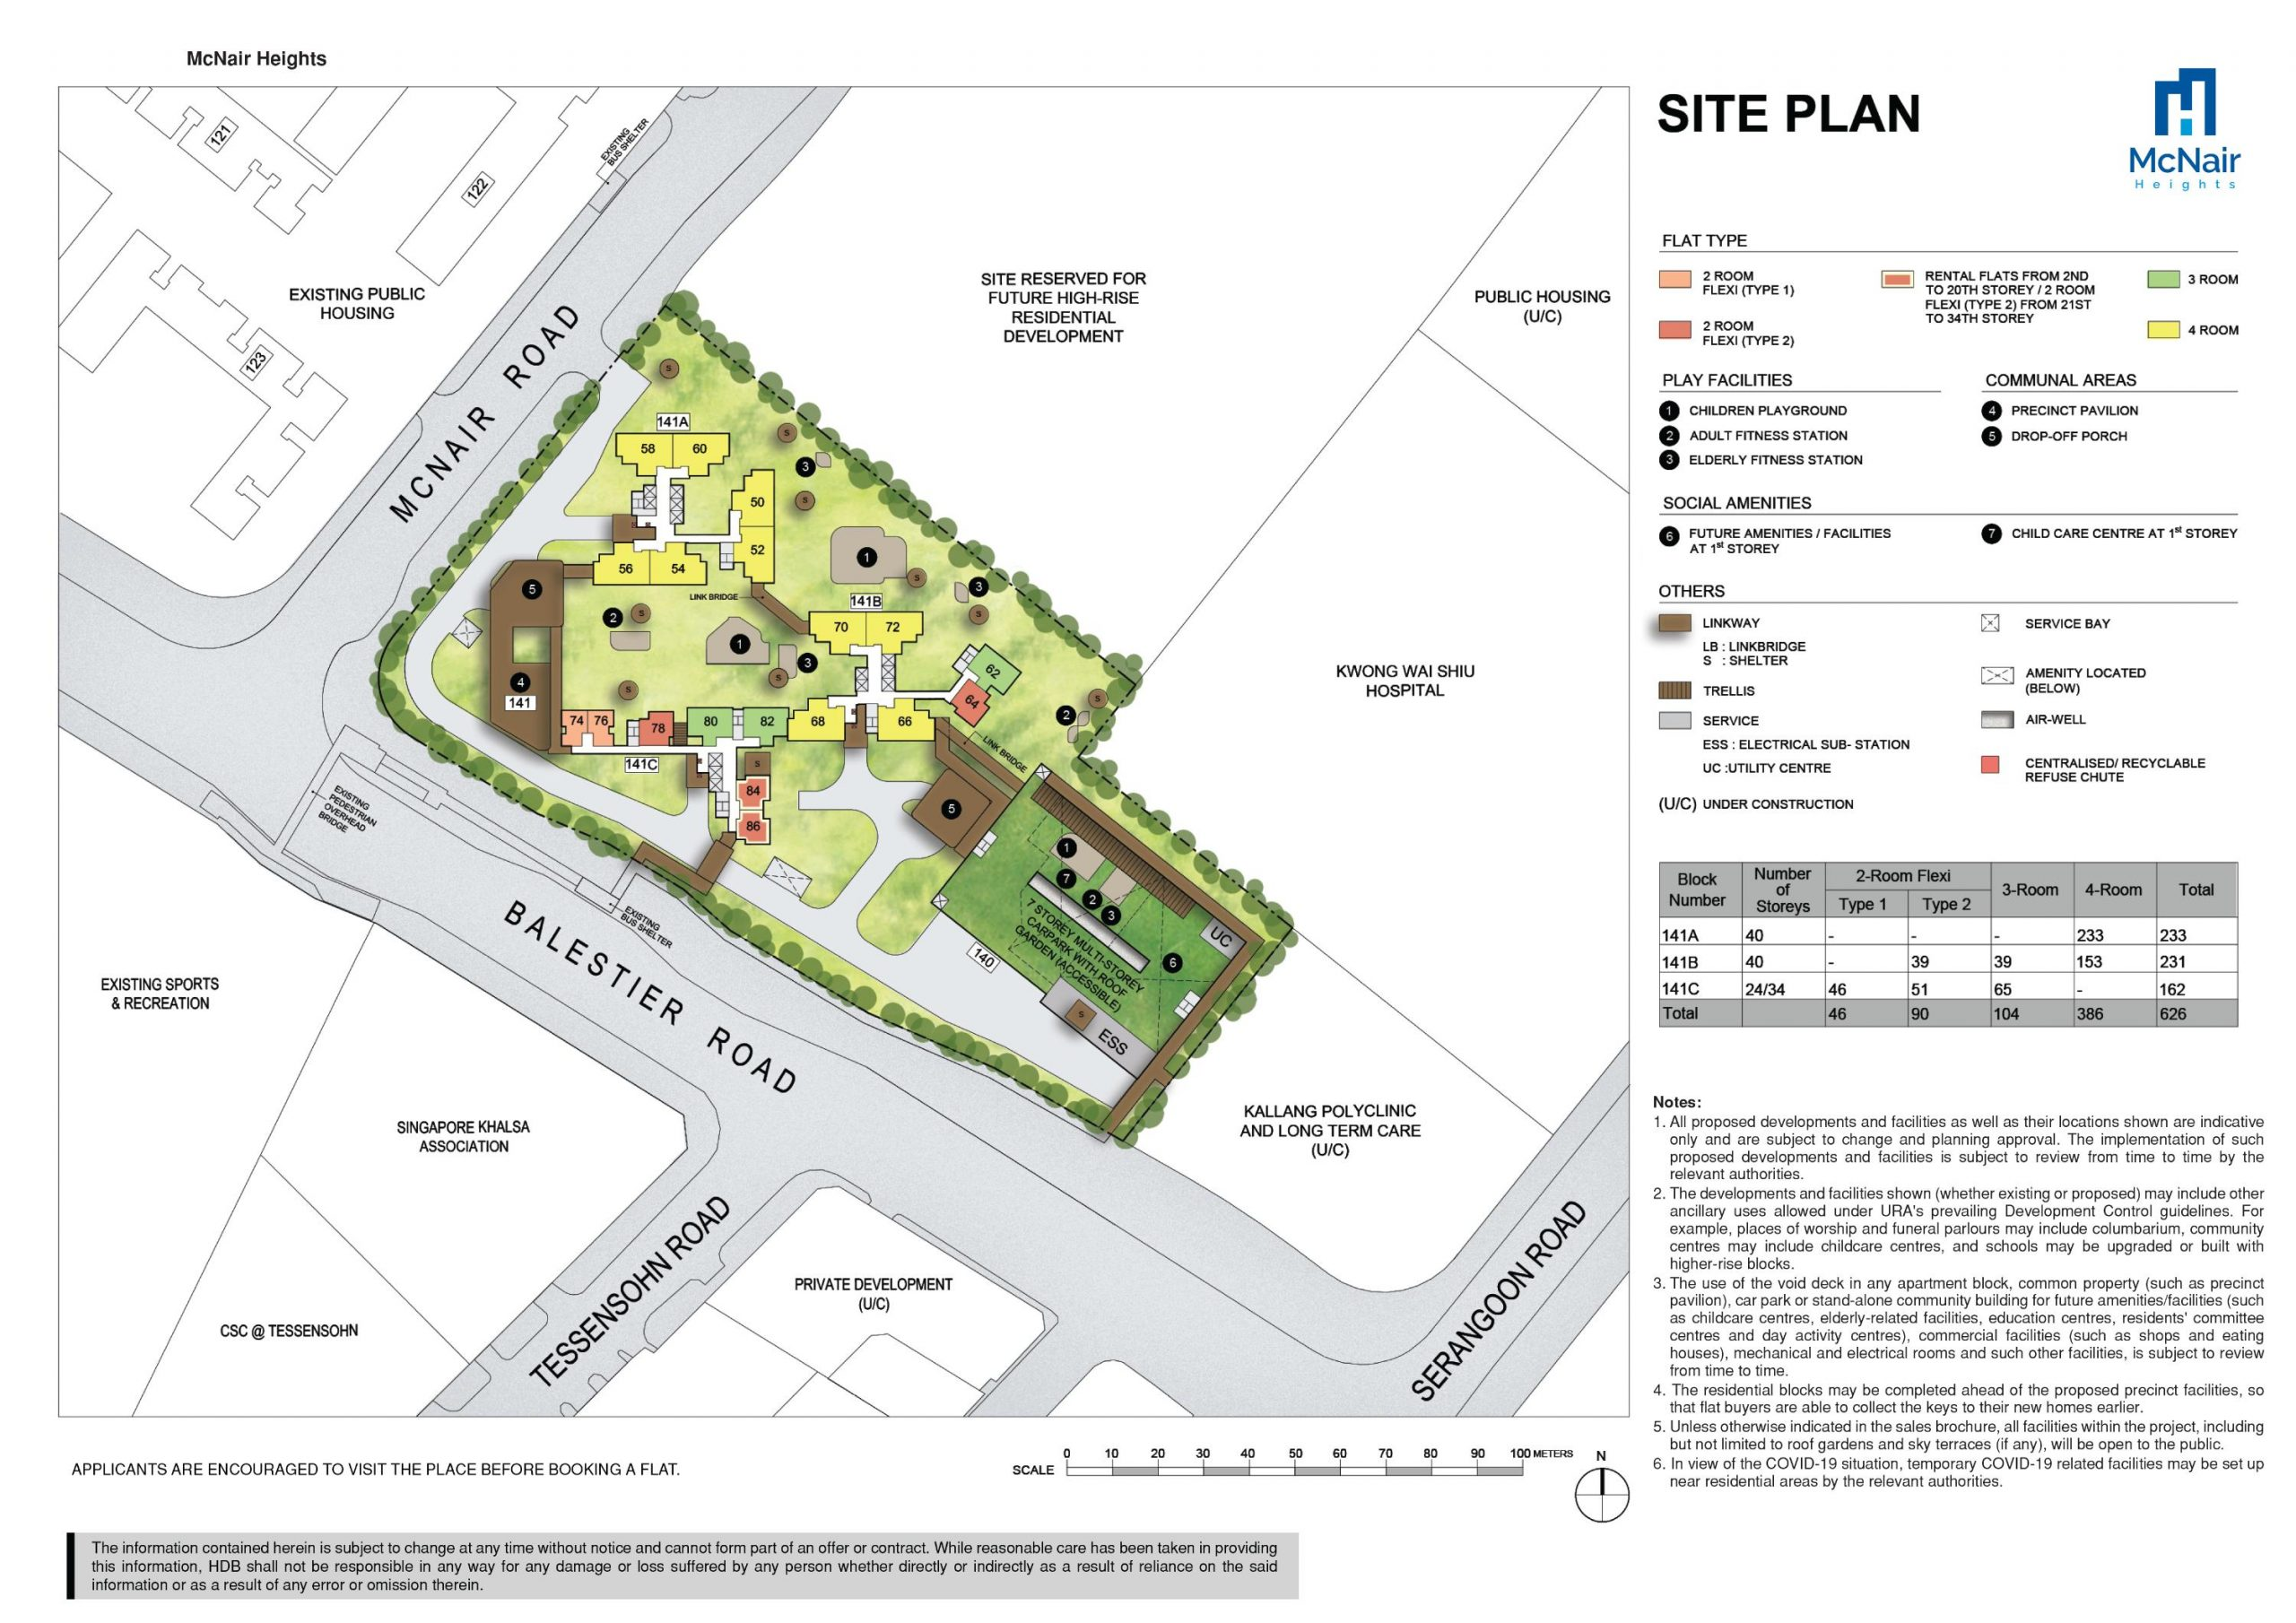 kallang whampoa hdb feb 2021 bto mcnair heights site plan scaled